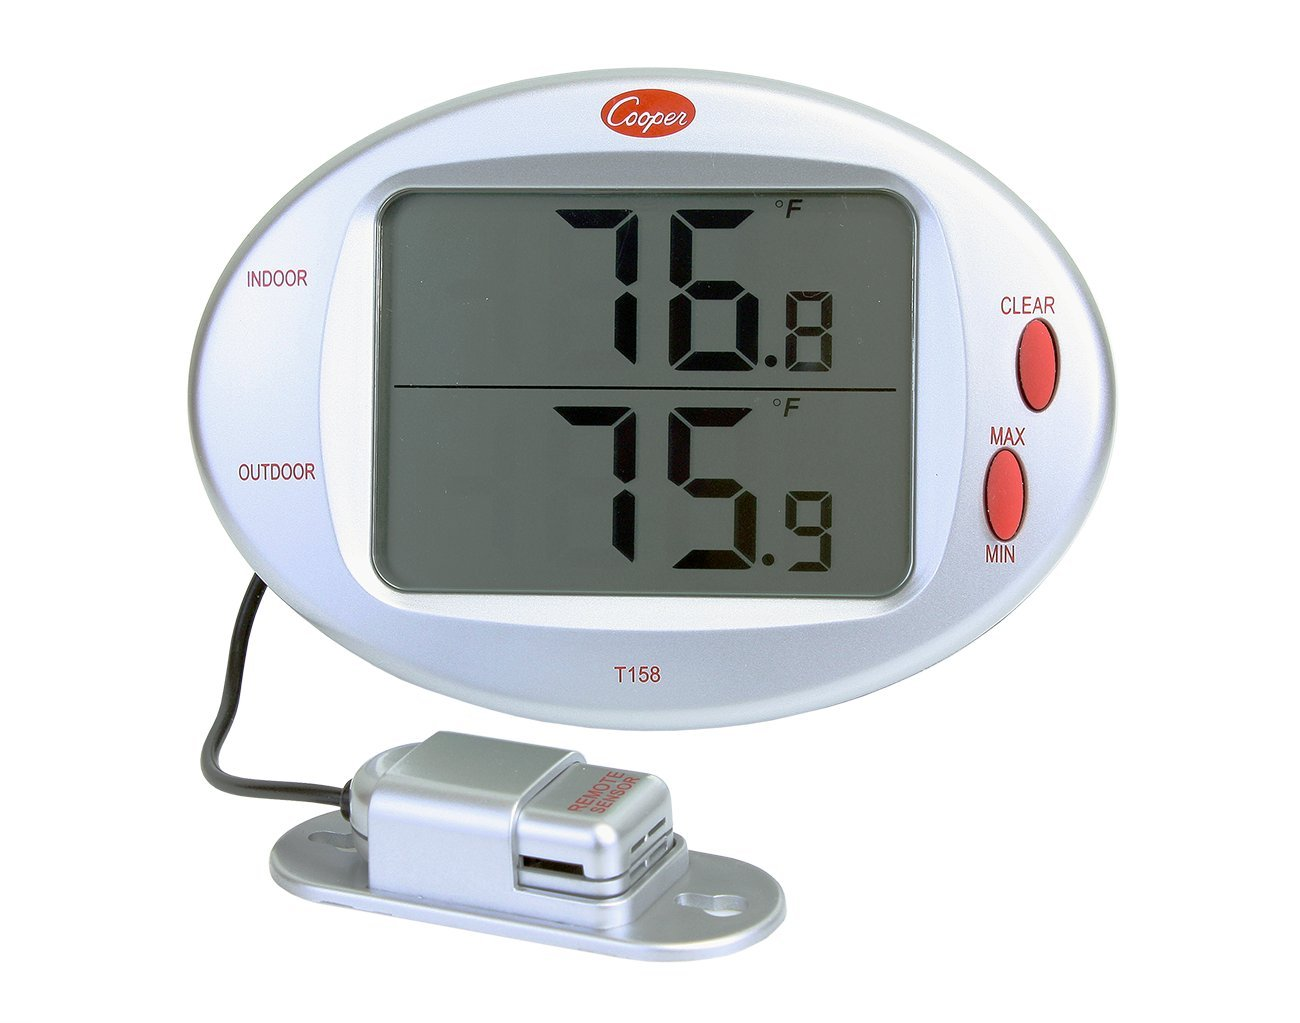 Cooper-Atkins T158-0-8 Digital Indoor/Outdoor Wall Thermometer with Remote Sensor, 32/122° F Temperature Range